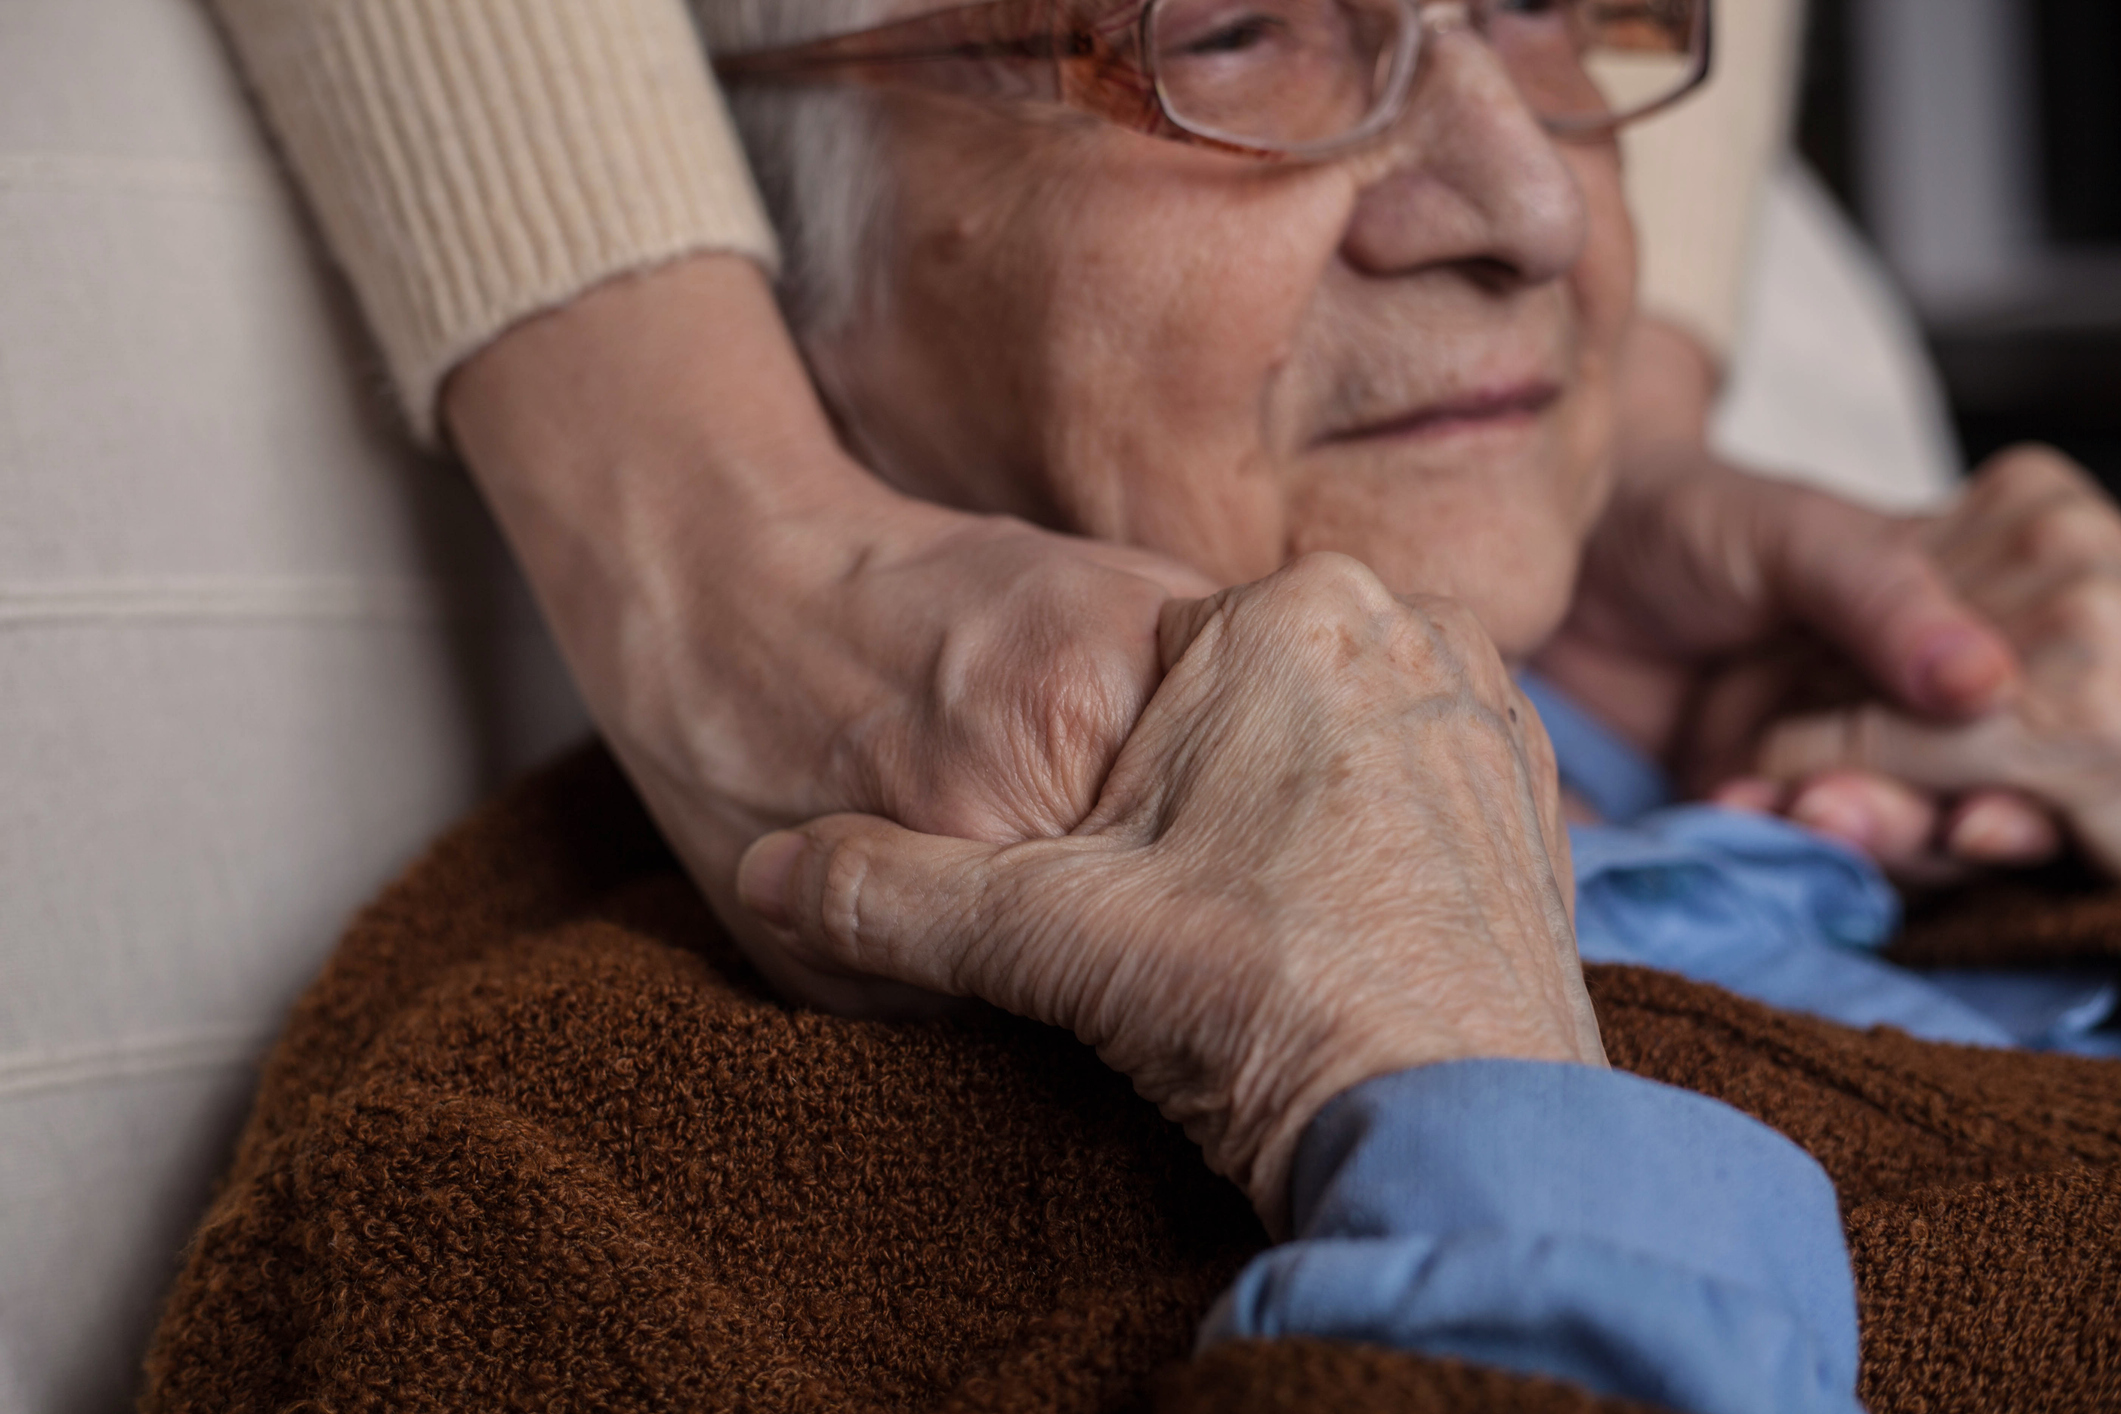 Learn late stage Alzheimer's symptoms and care tips for family caregivers.